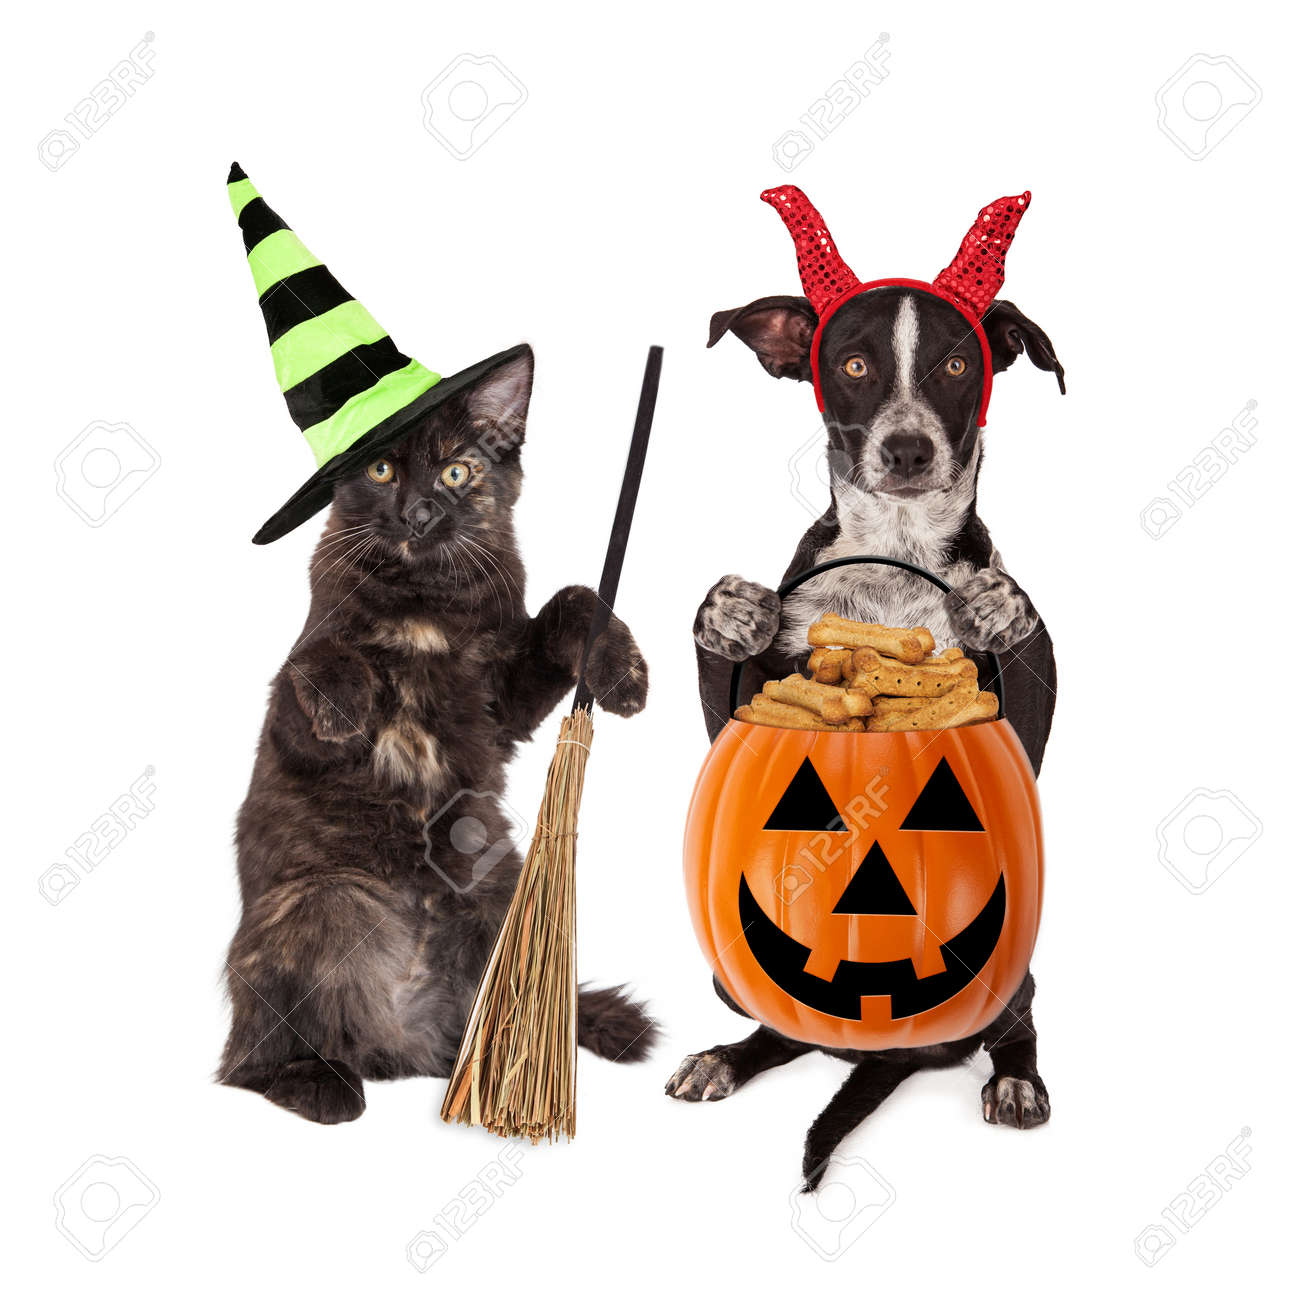 Cute black kitten and puppy dressed in Halloween costumes holding pumpkin filled with dog treats Stock  sc 1 st  123RF.com & Cute Black Kitten And Puppy Dressed In Halloween Costumes Holding ...